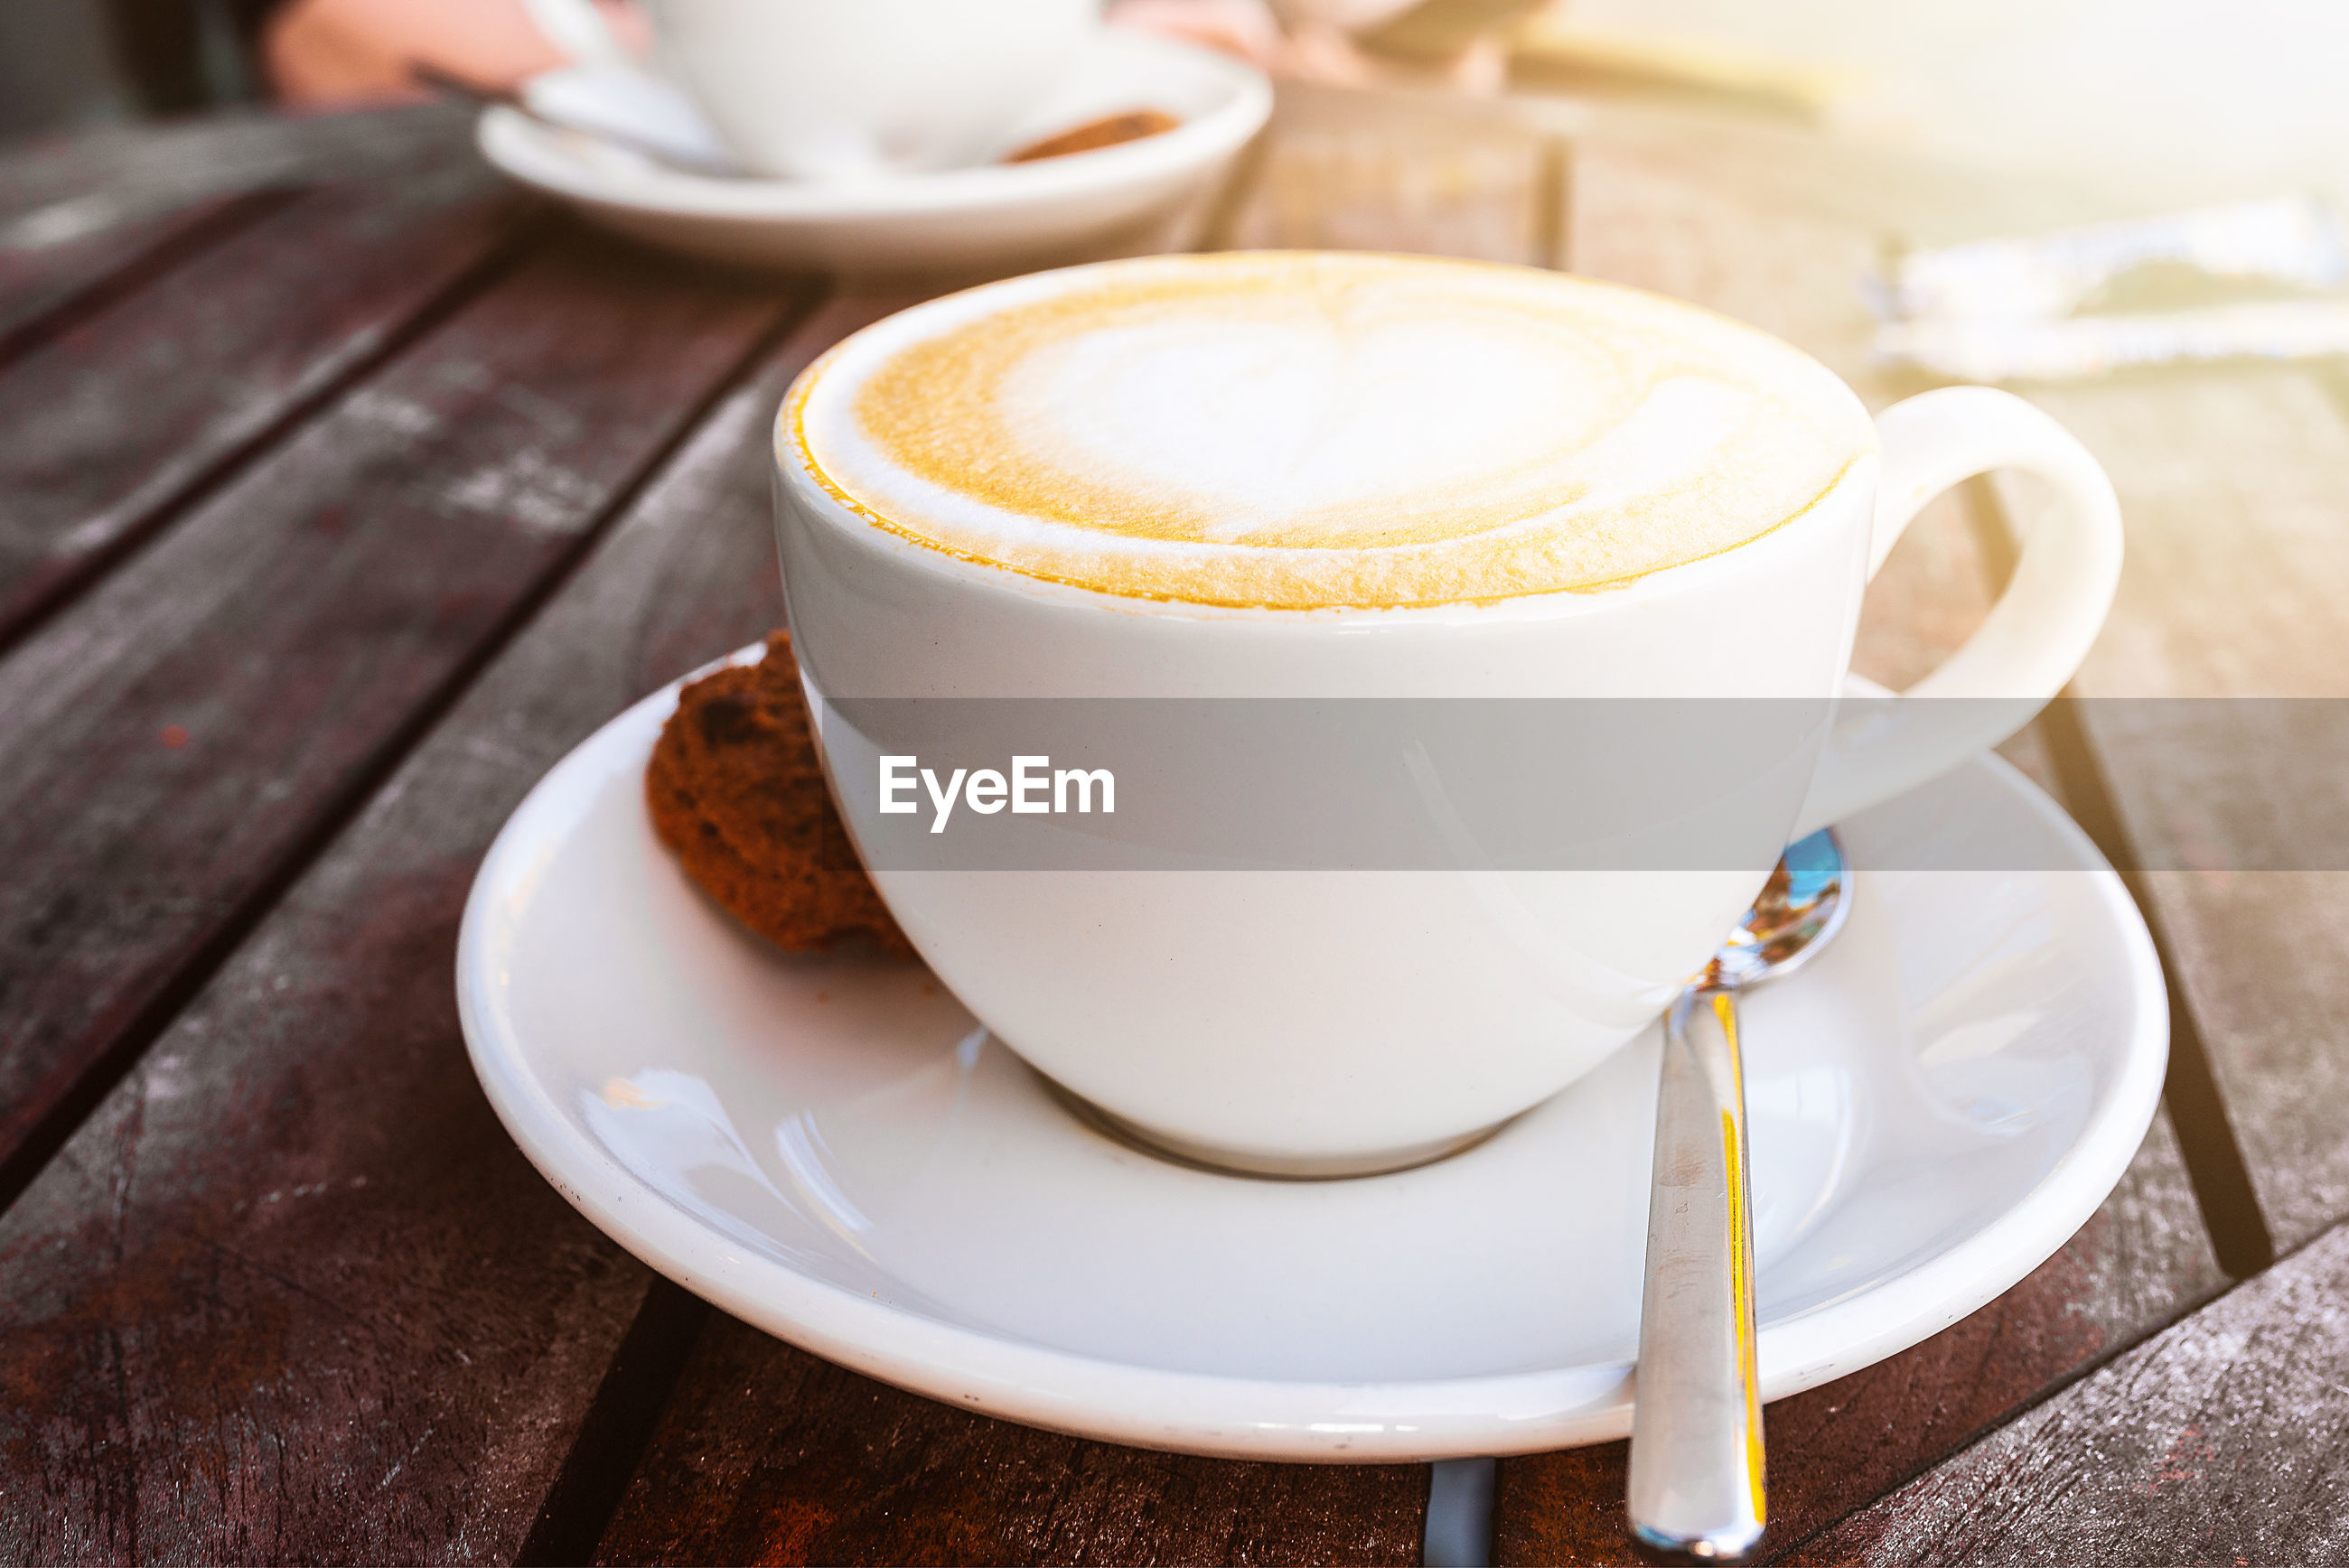 High angle view of cappuccino with cookie served on wooden table